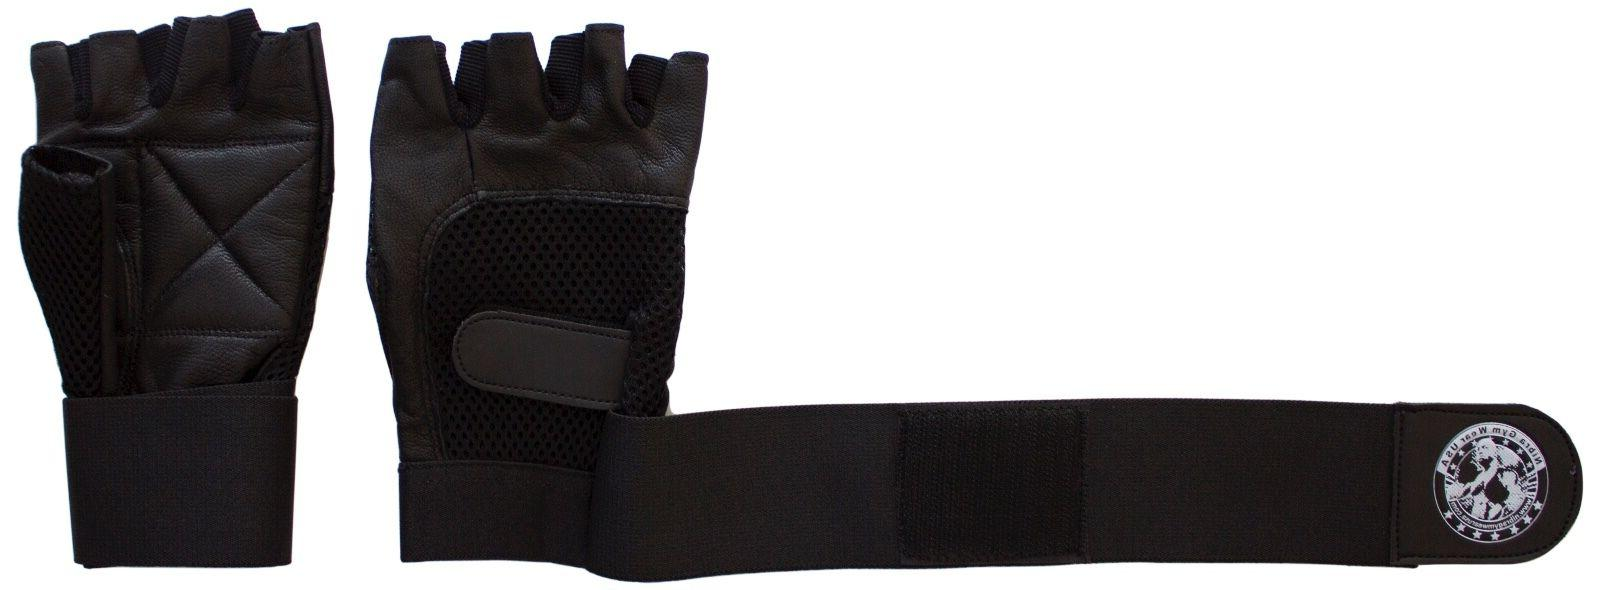 Gym Weight Exercise Gloves with iWrist Support